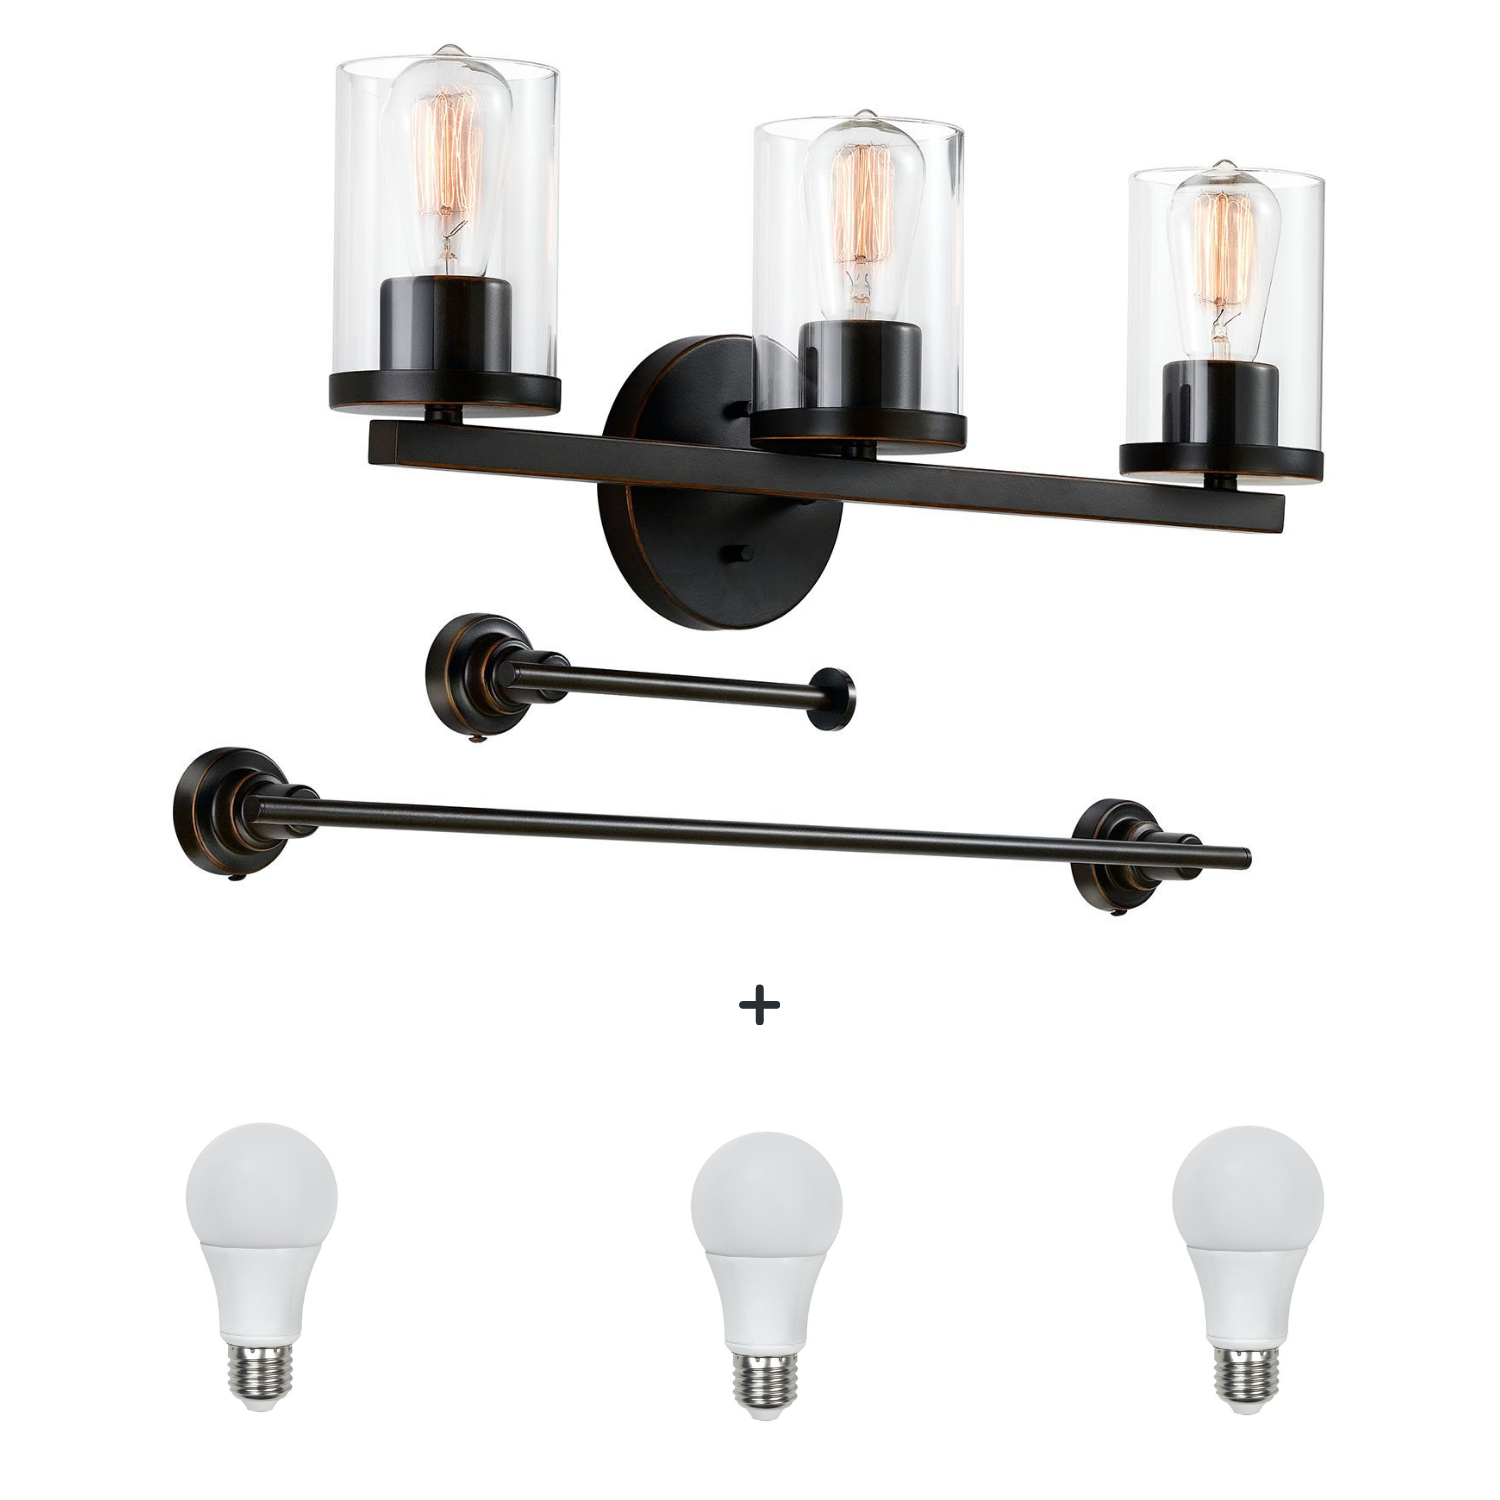 QPlus Bathroom Vanity Wall Light Fixture, 3 Lights in E26 Base & Clear Glass Sconces with Towel Bar & Toilet Paper Holder Accessories - Bronze Finish + A21 LED Bulbs Free